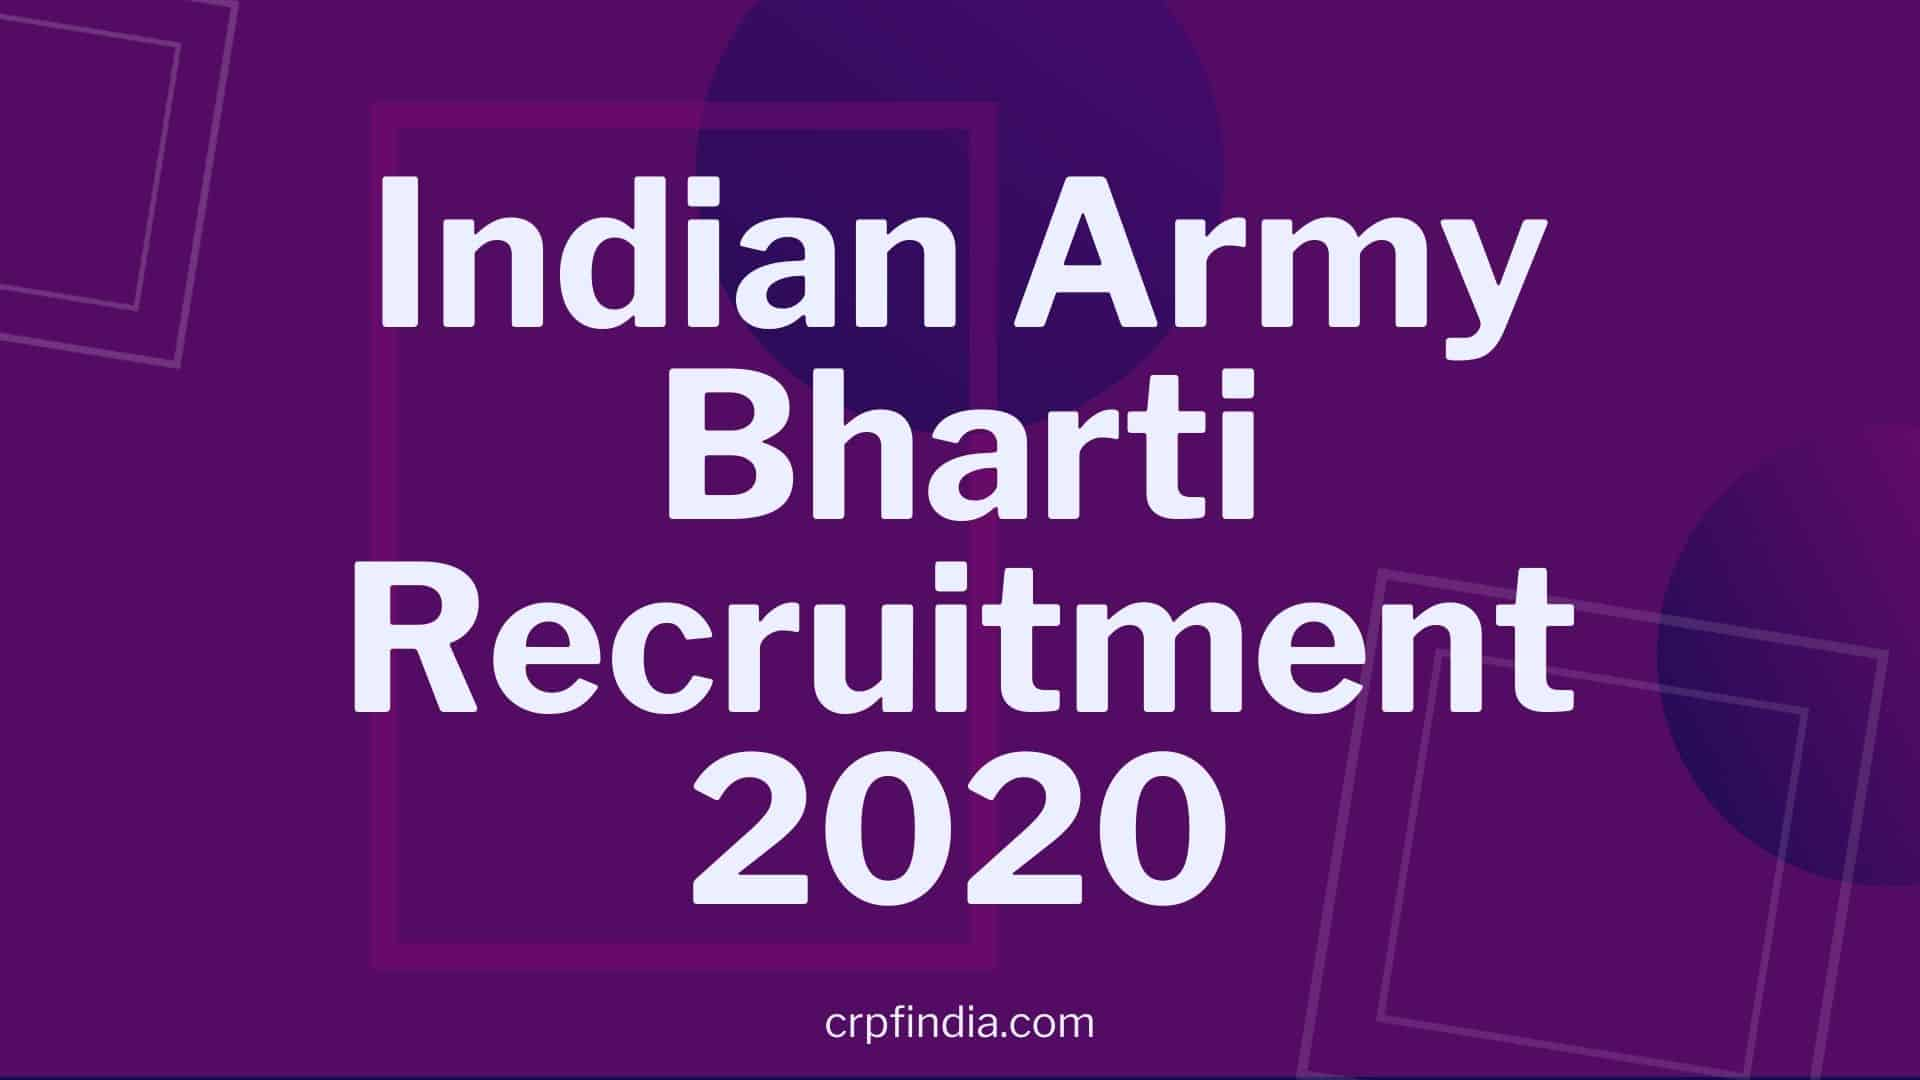 Photo of Indian Army Bharti/Recruitment 2020